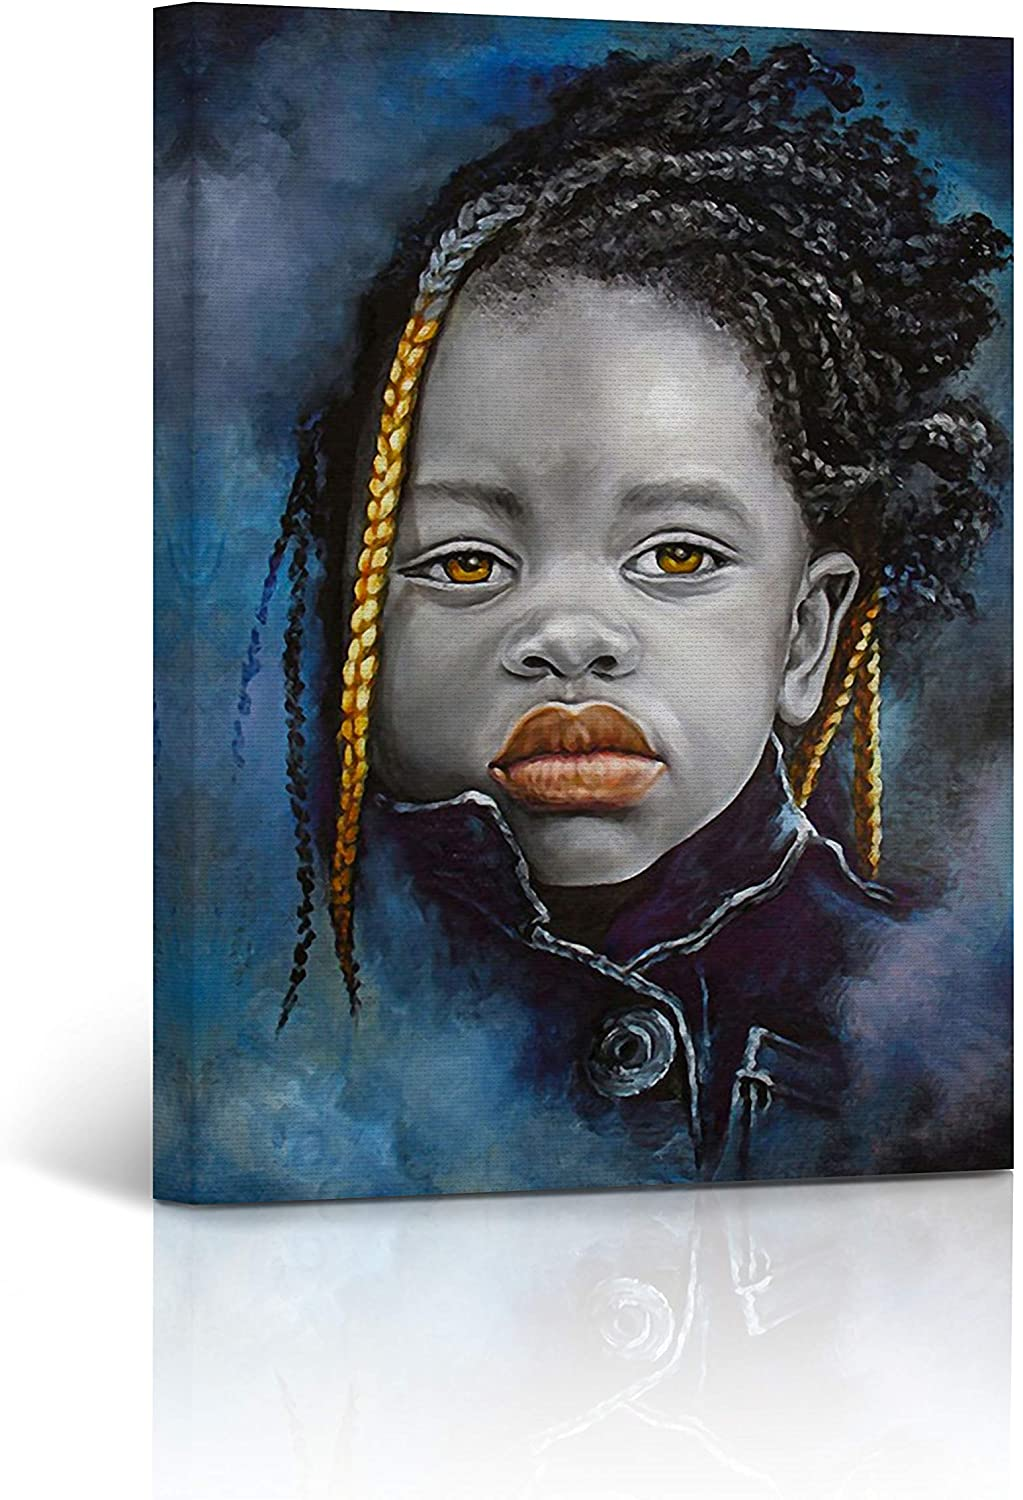 Buy4Wall African Wall Art Canvas Print Little Kid Impressive Look in Black Orange and Blue Oil Painting Art Home Decor Artwork Stretched and Framed - Ready to Hang -%100 Handmade in The USA 12x8